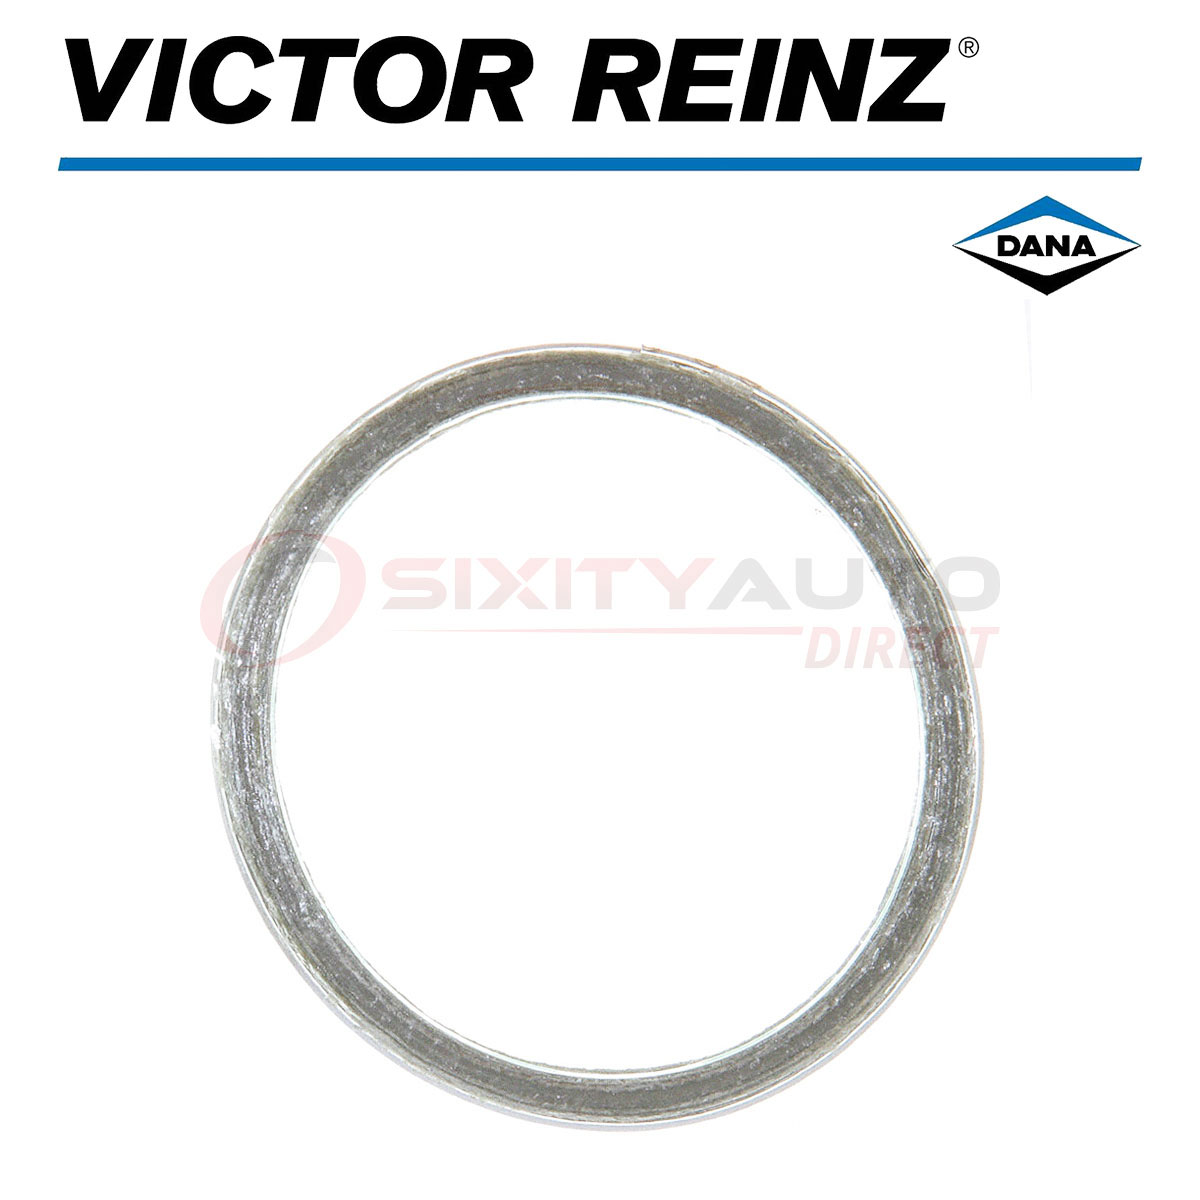 Victor Reinz Exhaust Seal Ring for 2000 Saturn LS1 2.2L L4